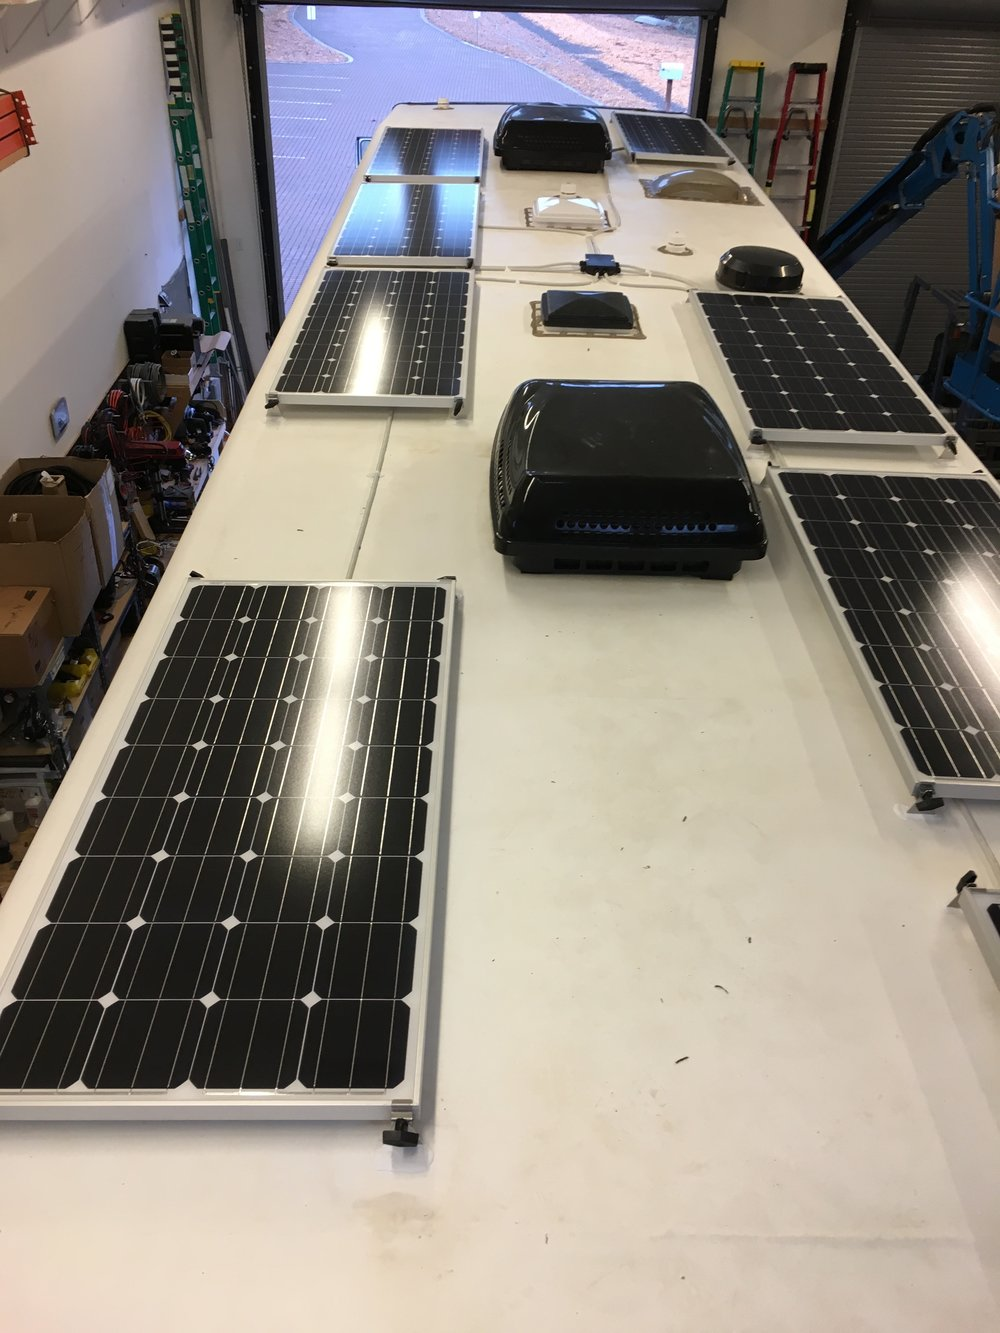 Equipment Added: 8x SF160 Solar Panels 1x Roof C-Box 1x SunRunner Victron MPPT 100A System Core 1x 900Ah Signature Lithium Battery Bank 1x Victron MultiPlus 3000VA Inverter Kit